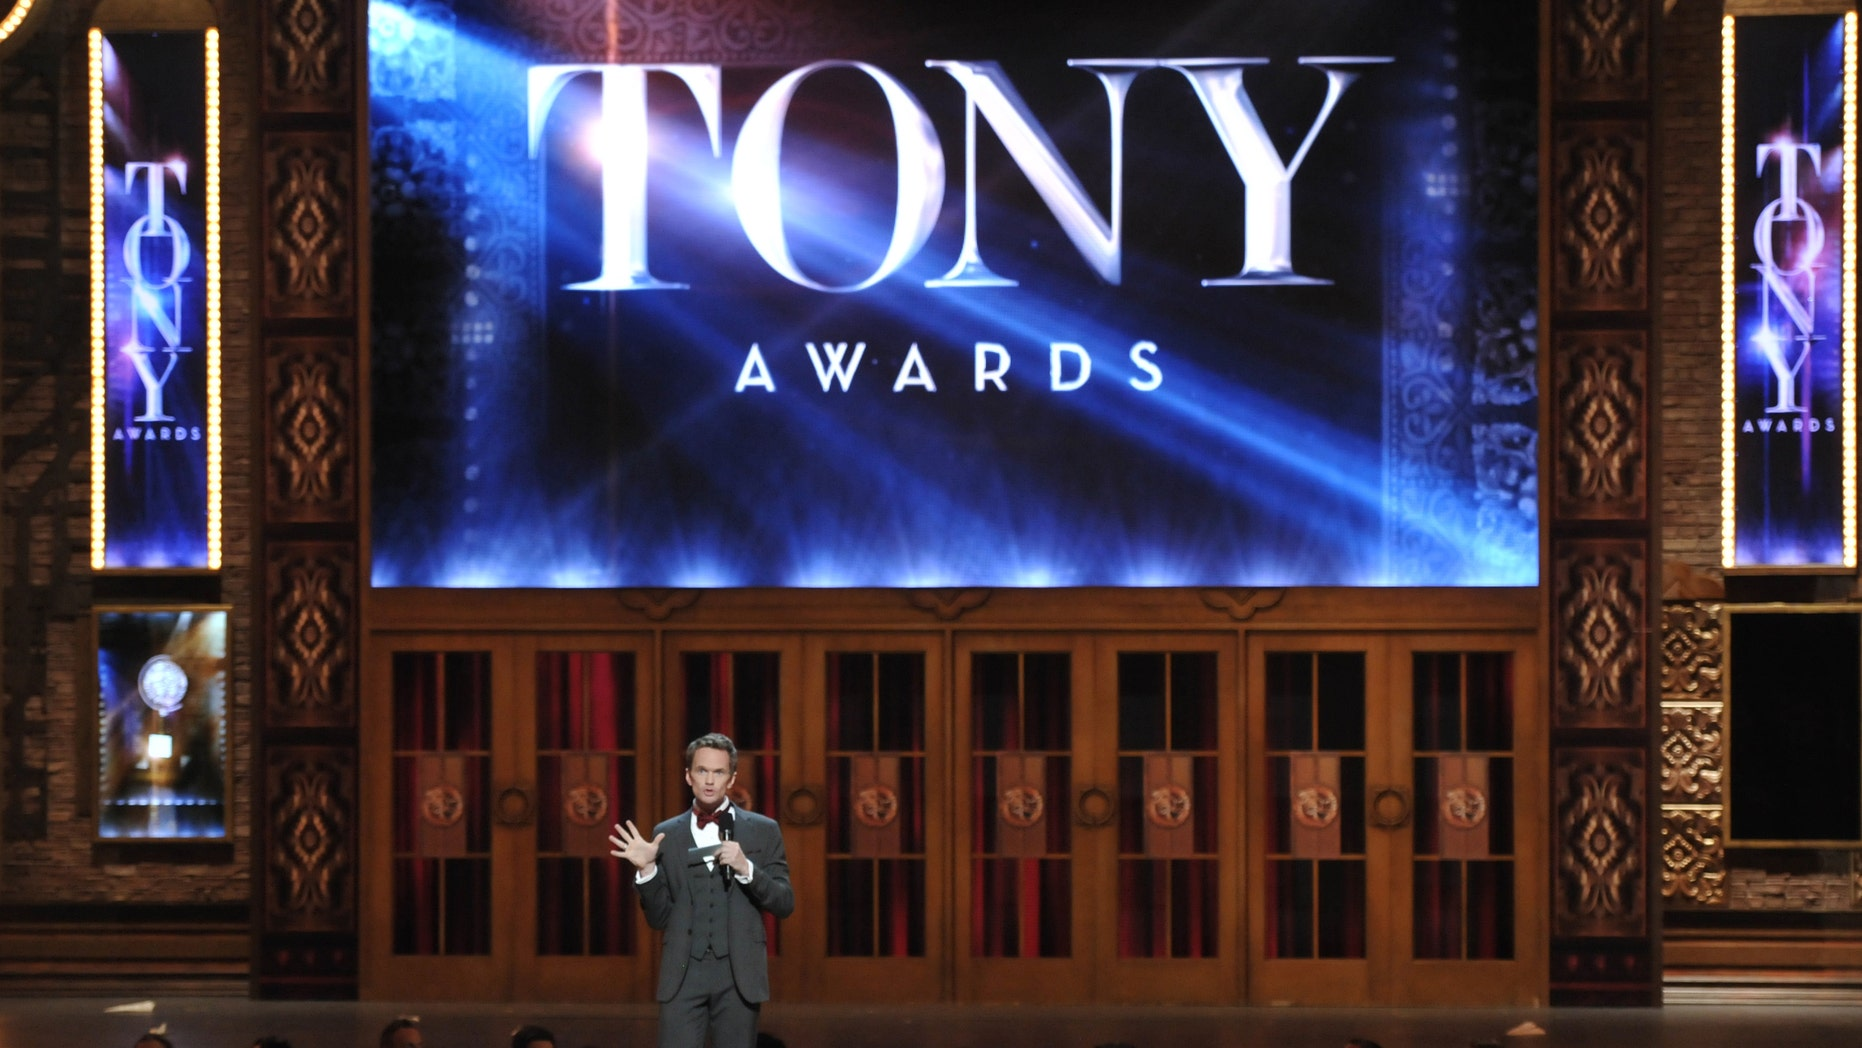 Host Neil Patrick Harris introduces the 67th Annual Tony Awards, on Sunday, June 9, 2013 in New York.  (Photo by Evan Agostini/Invision/AP)